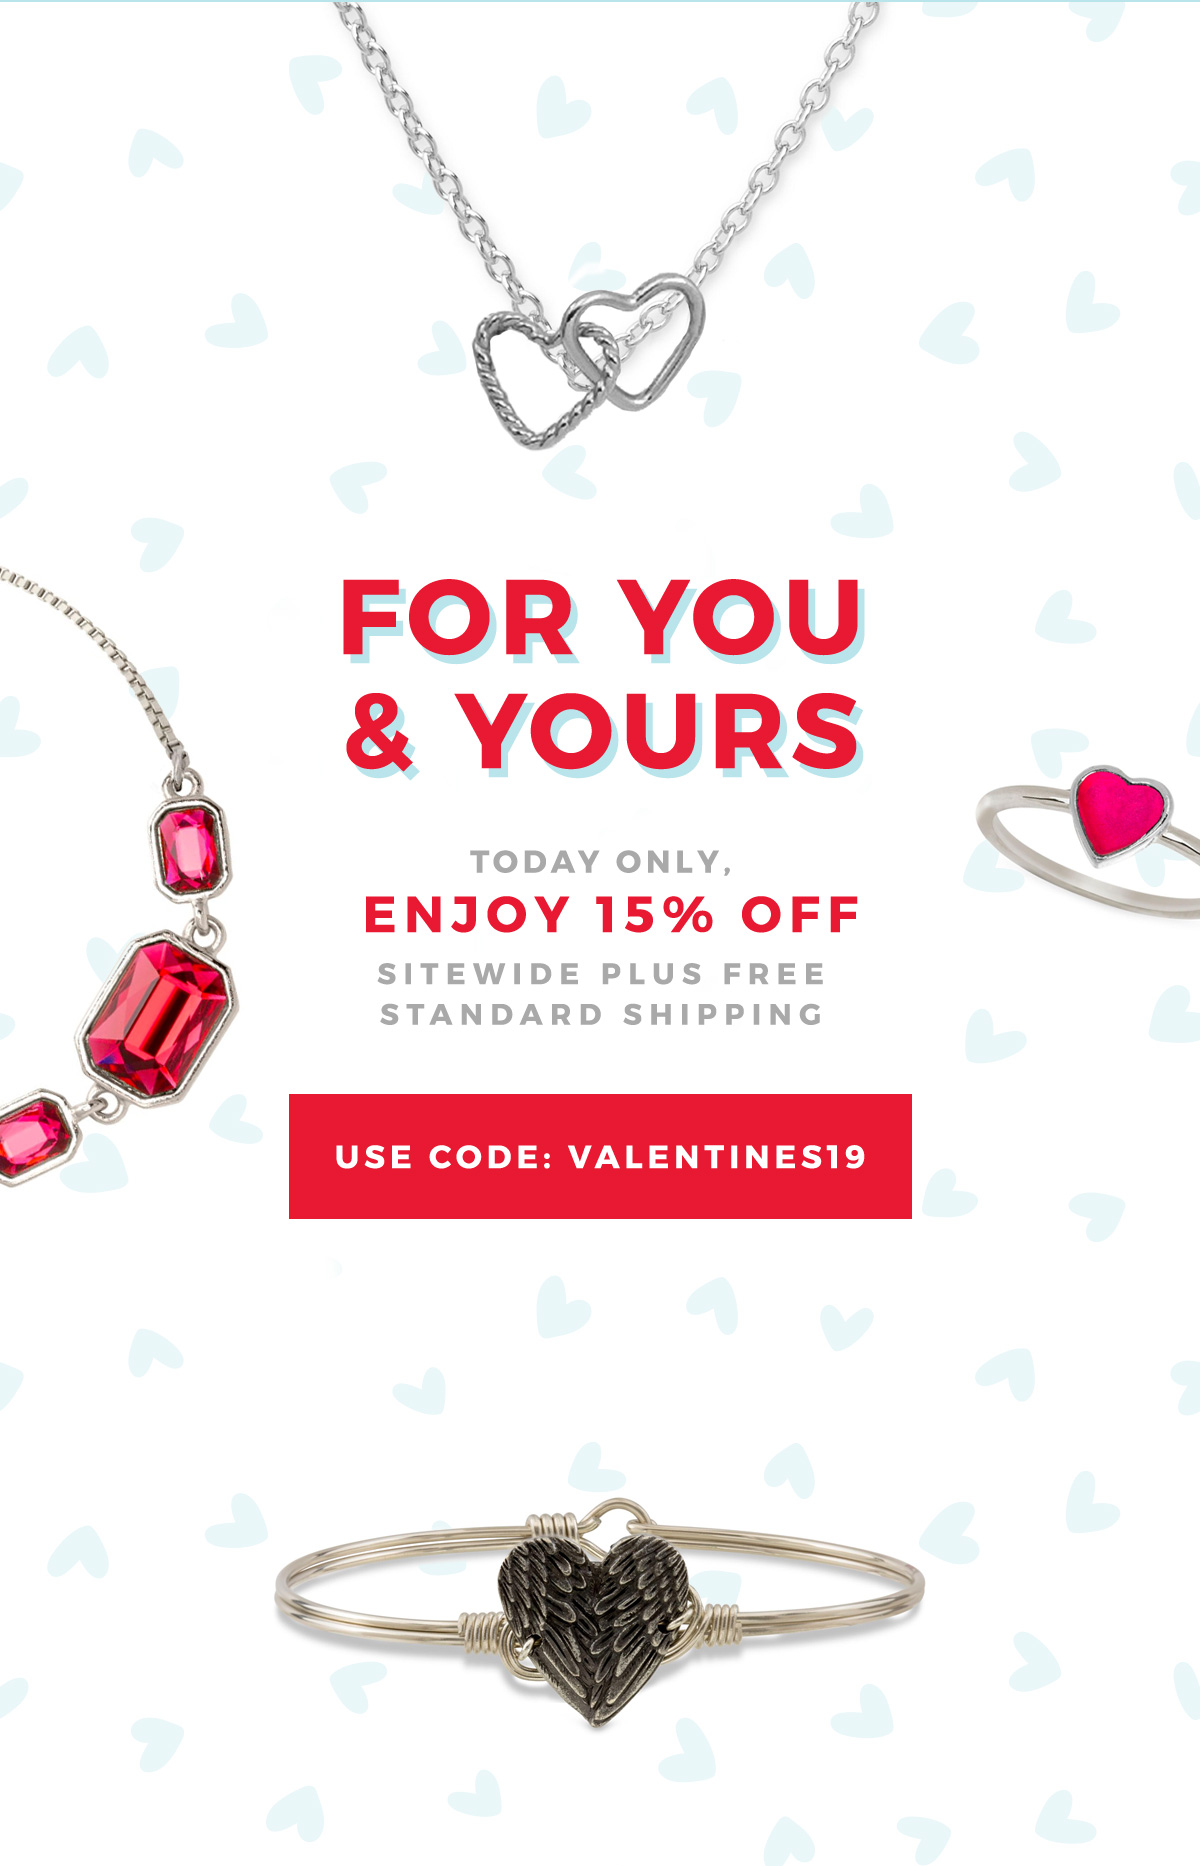 FOR YOU & YOURS | Today only, enjoy 15% off sitewide plus free standard shipping | USE CODE: VALENTINES19